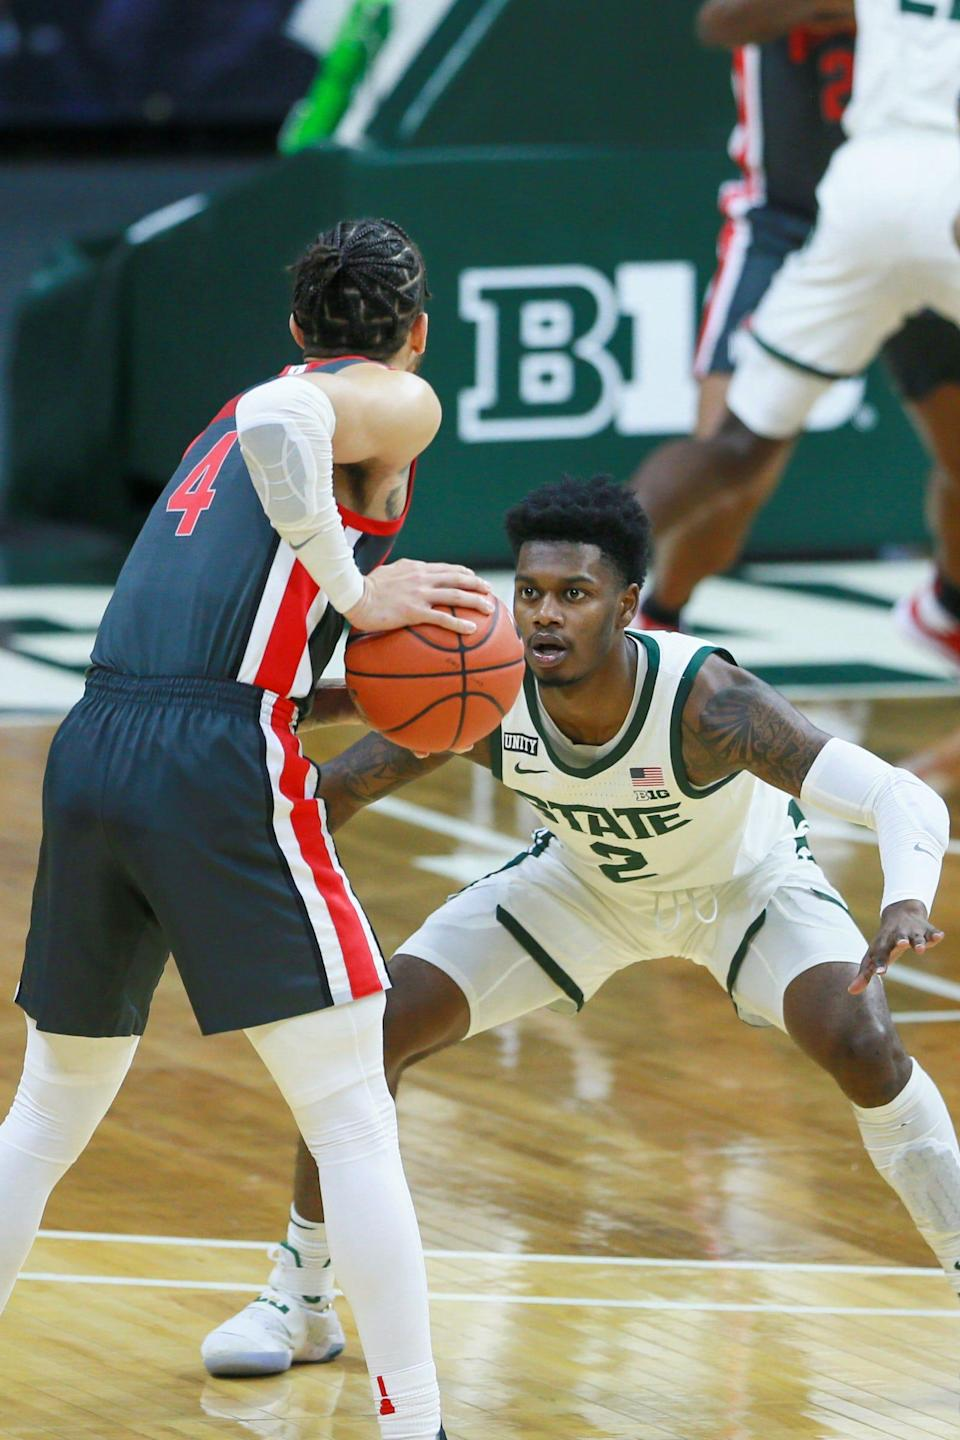 Michigan State guard Rocket Watts guards Ohio State guard Duane Washington Jr. in the first half against Ohio State on Thursday, Feb. 25, 2021, in East Lansing.